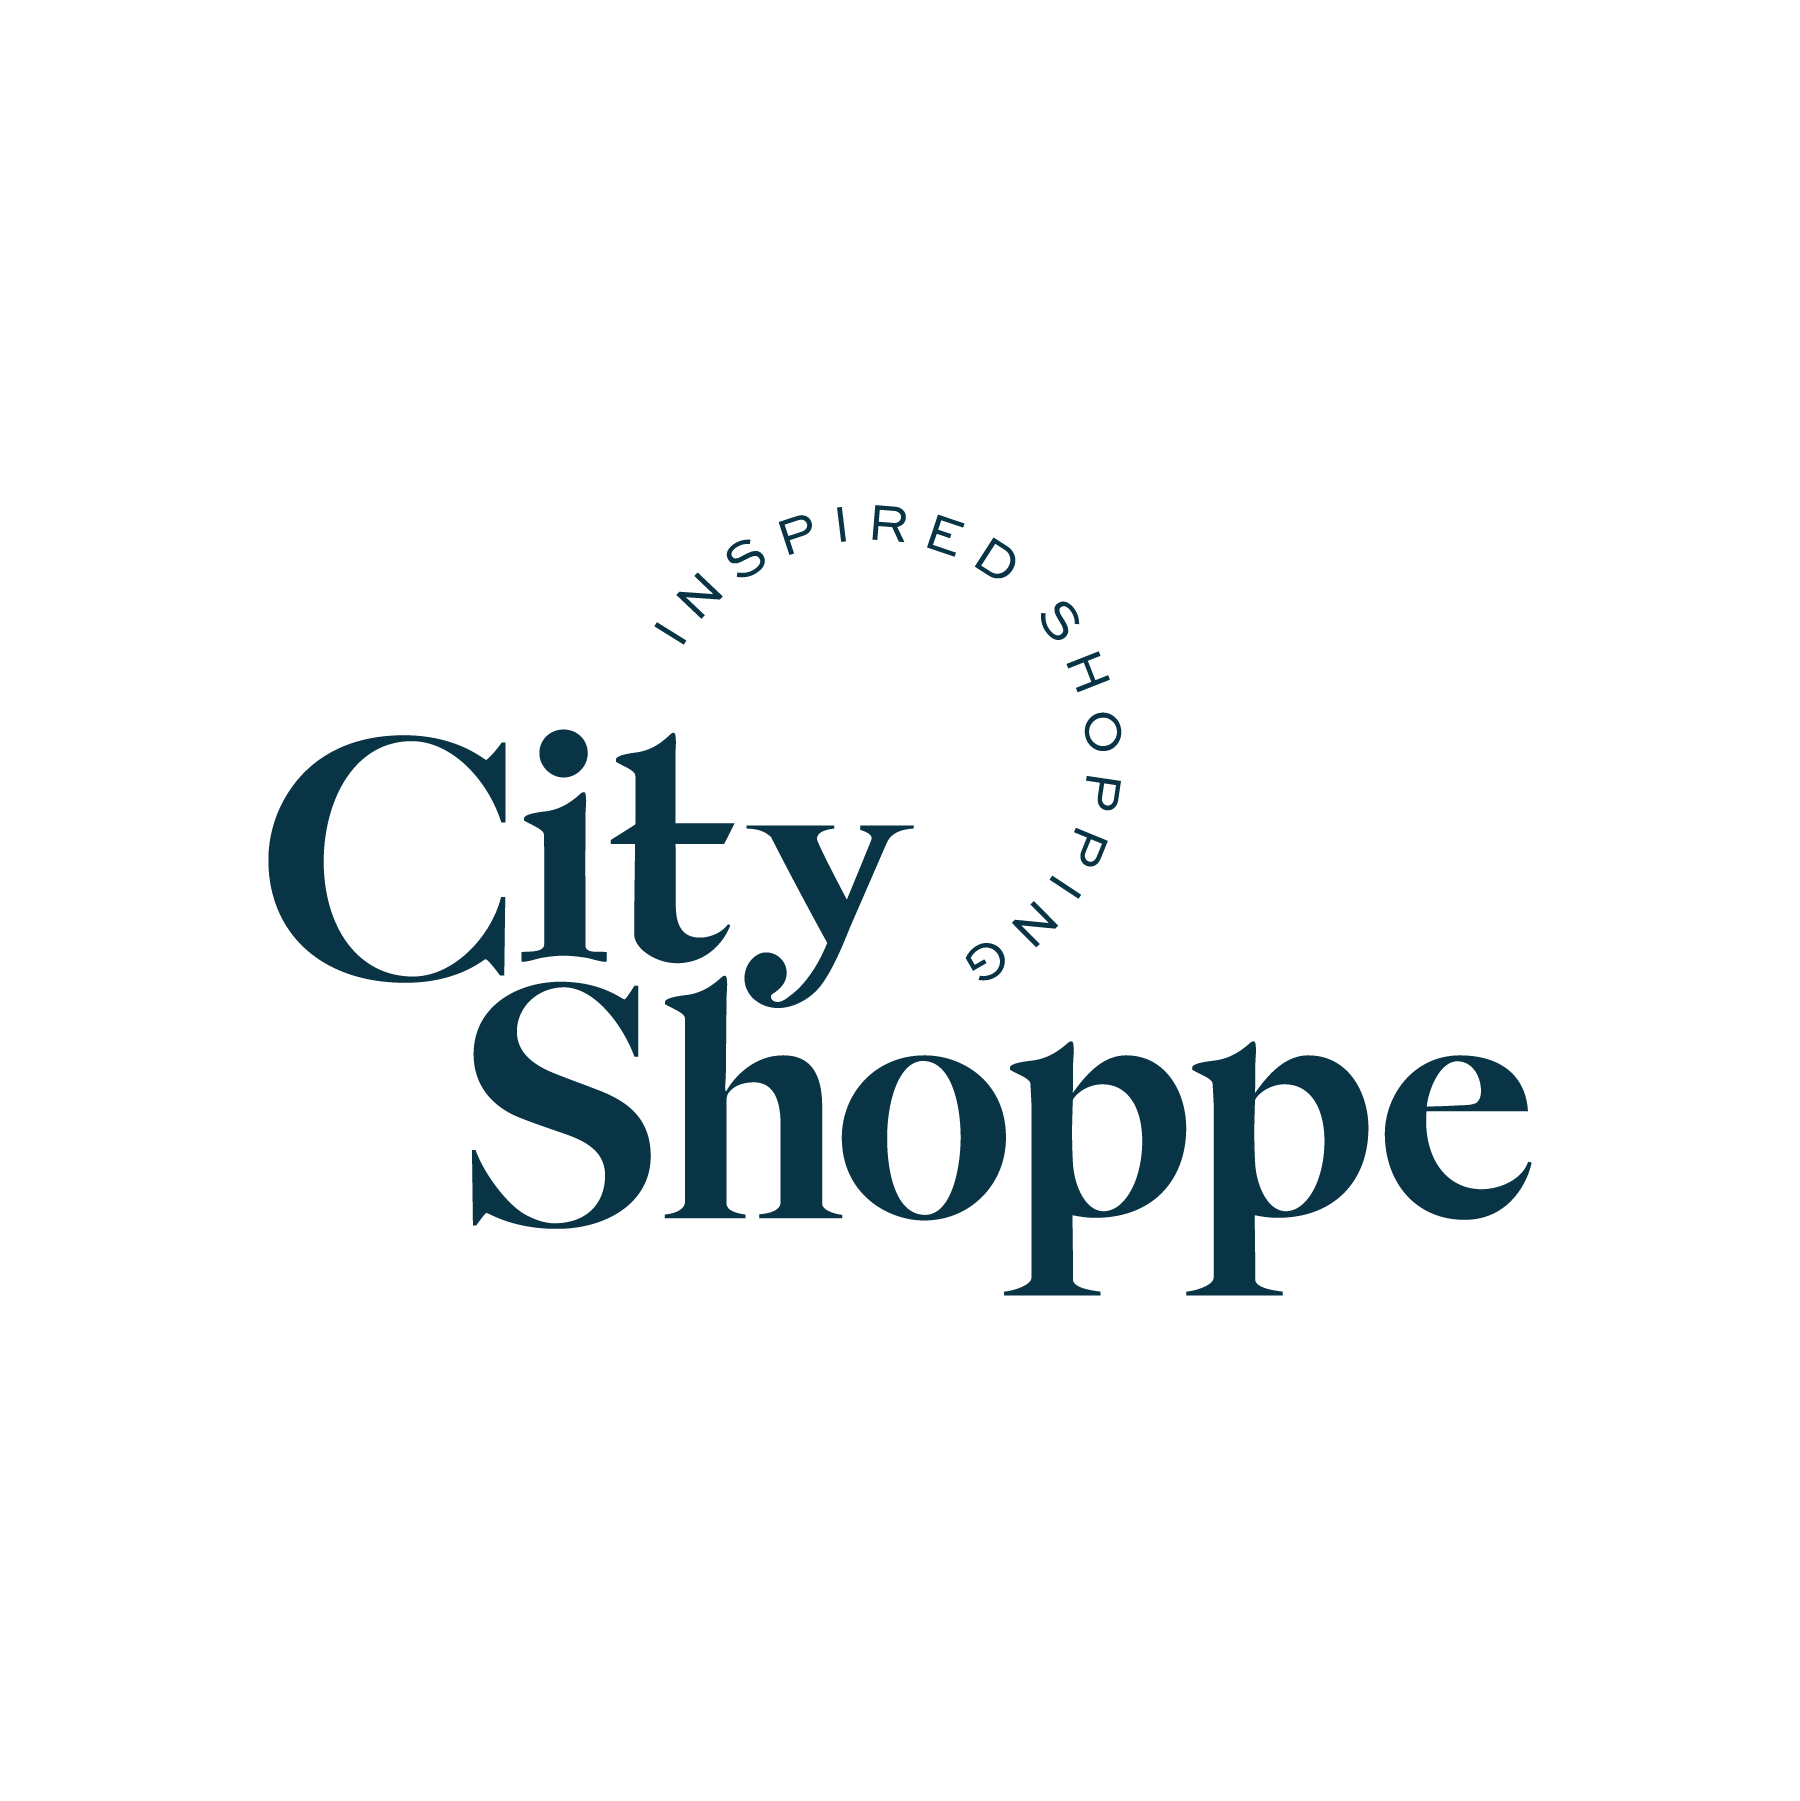 Female-Founded Tech Company Launches City Shoppe Digital Marketplace For Local Goods